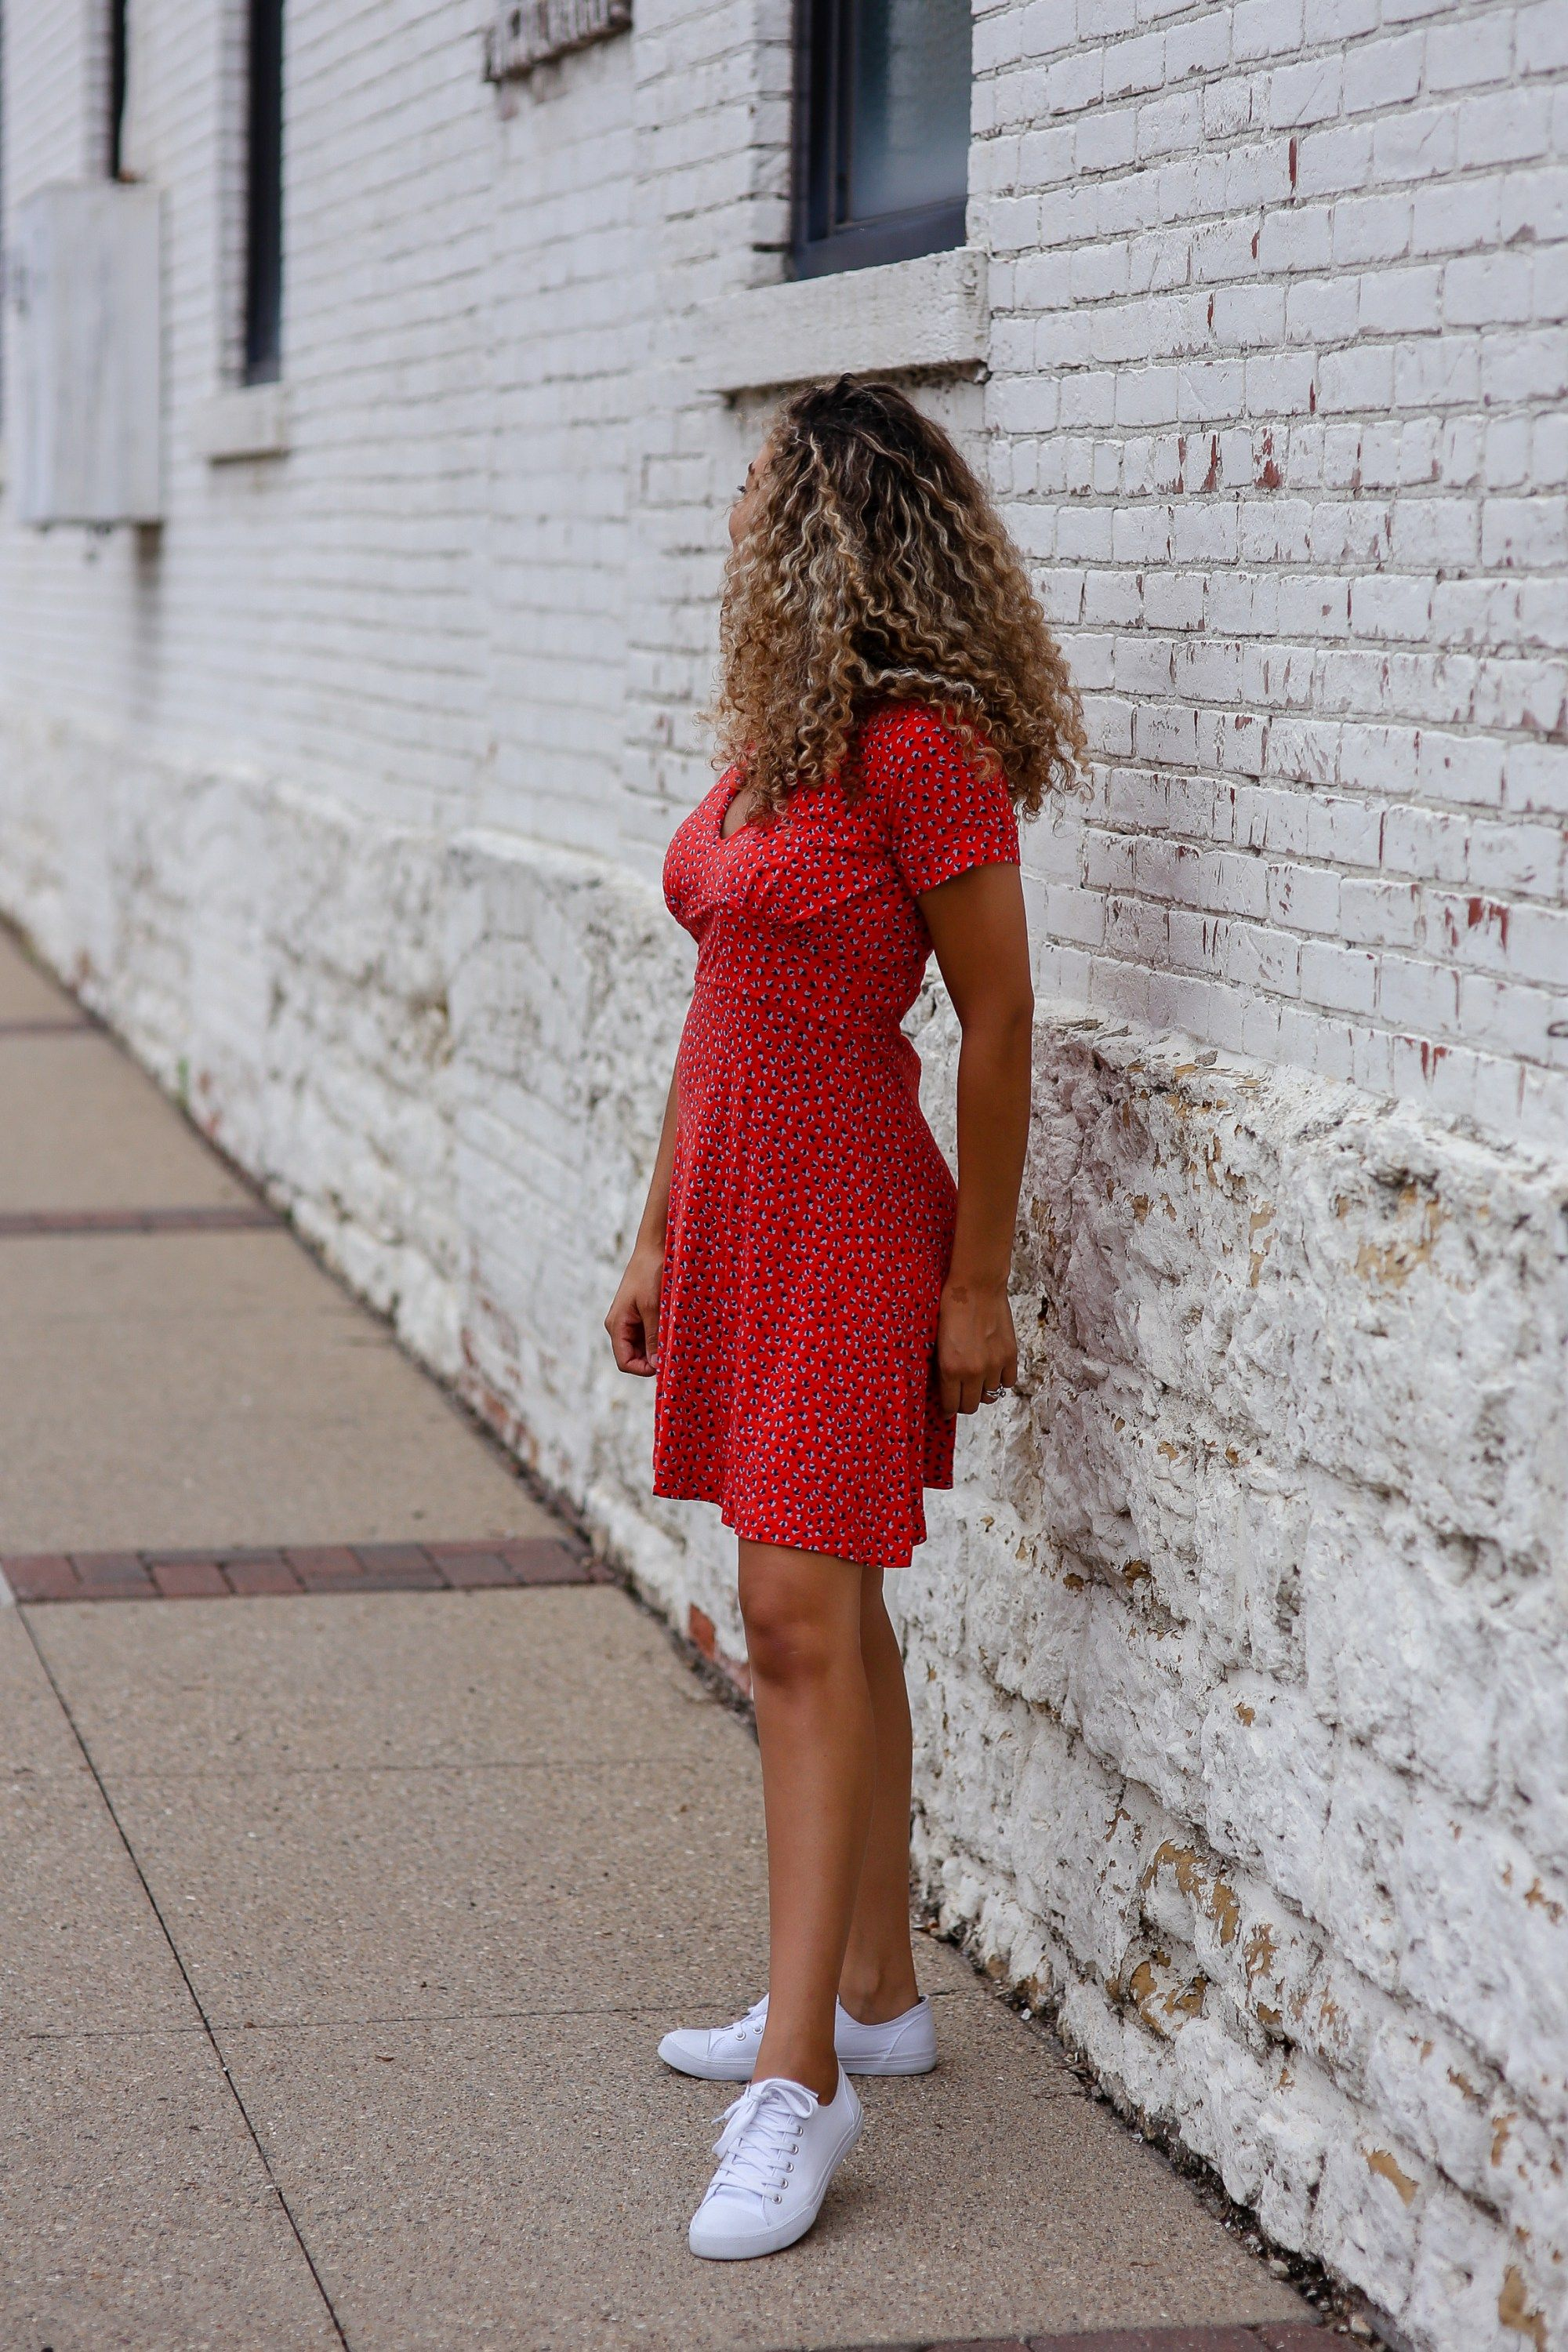 434b247fc9f8 red dress and sneakers summer outfit summer fashion   summer outfit ideas    fashion   style   outfit formula